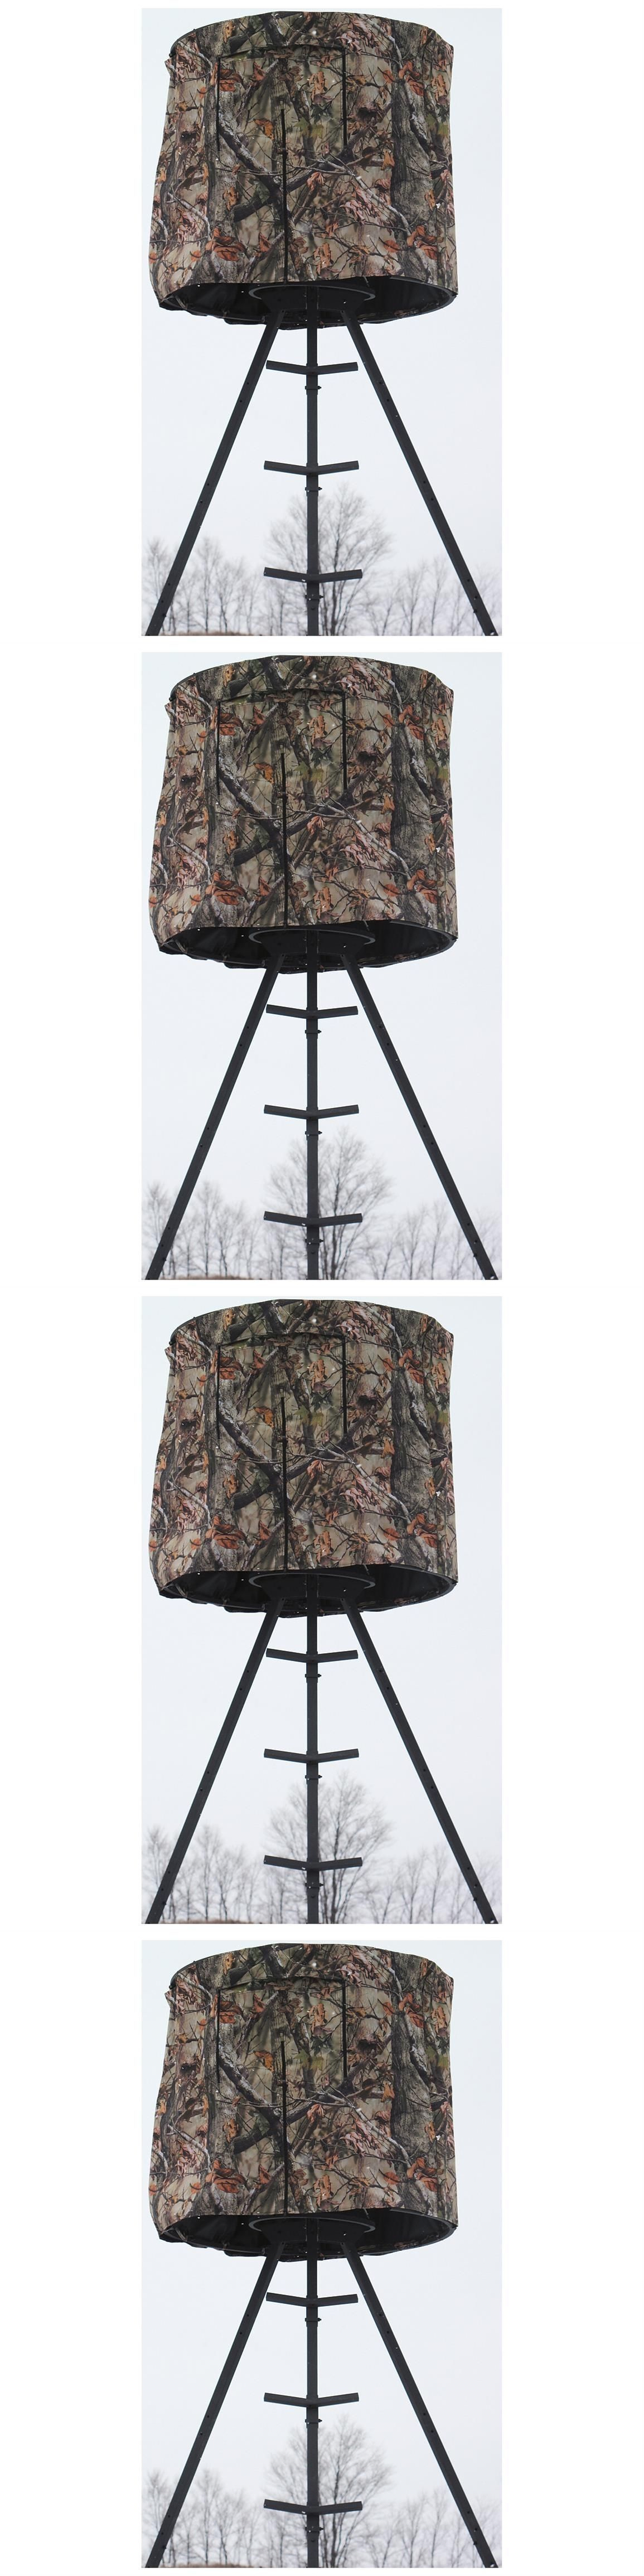 part sale box deer hunting youtube for blind blinds old out totes watch of